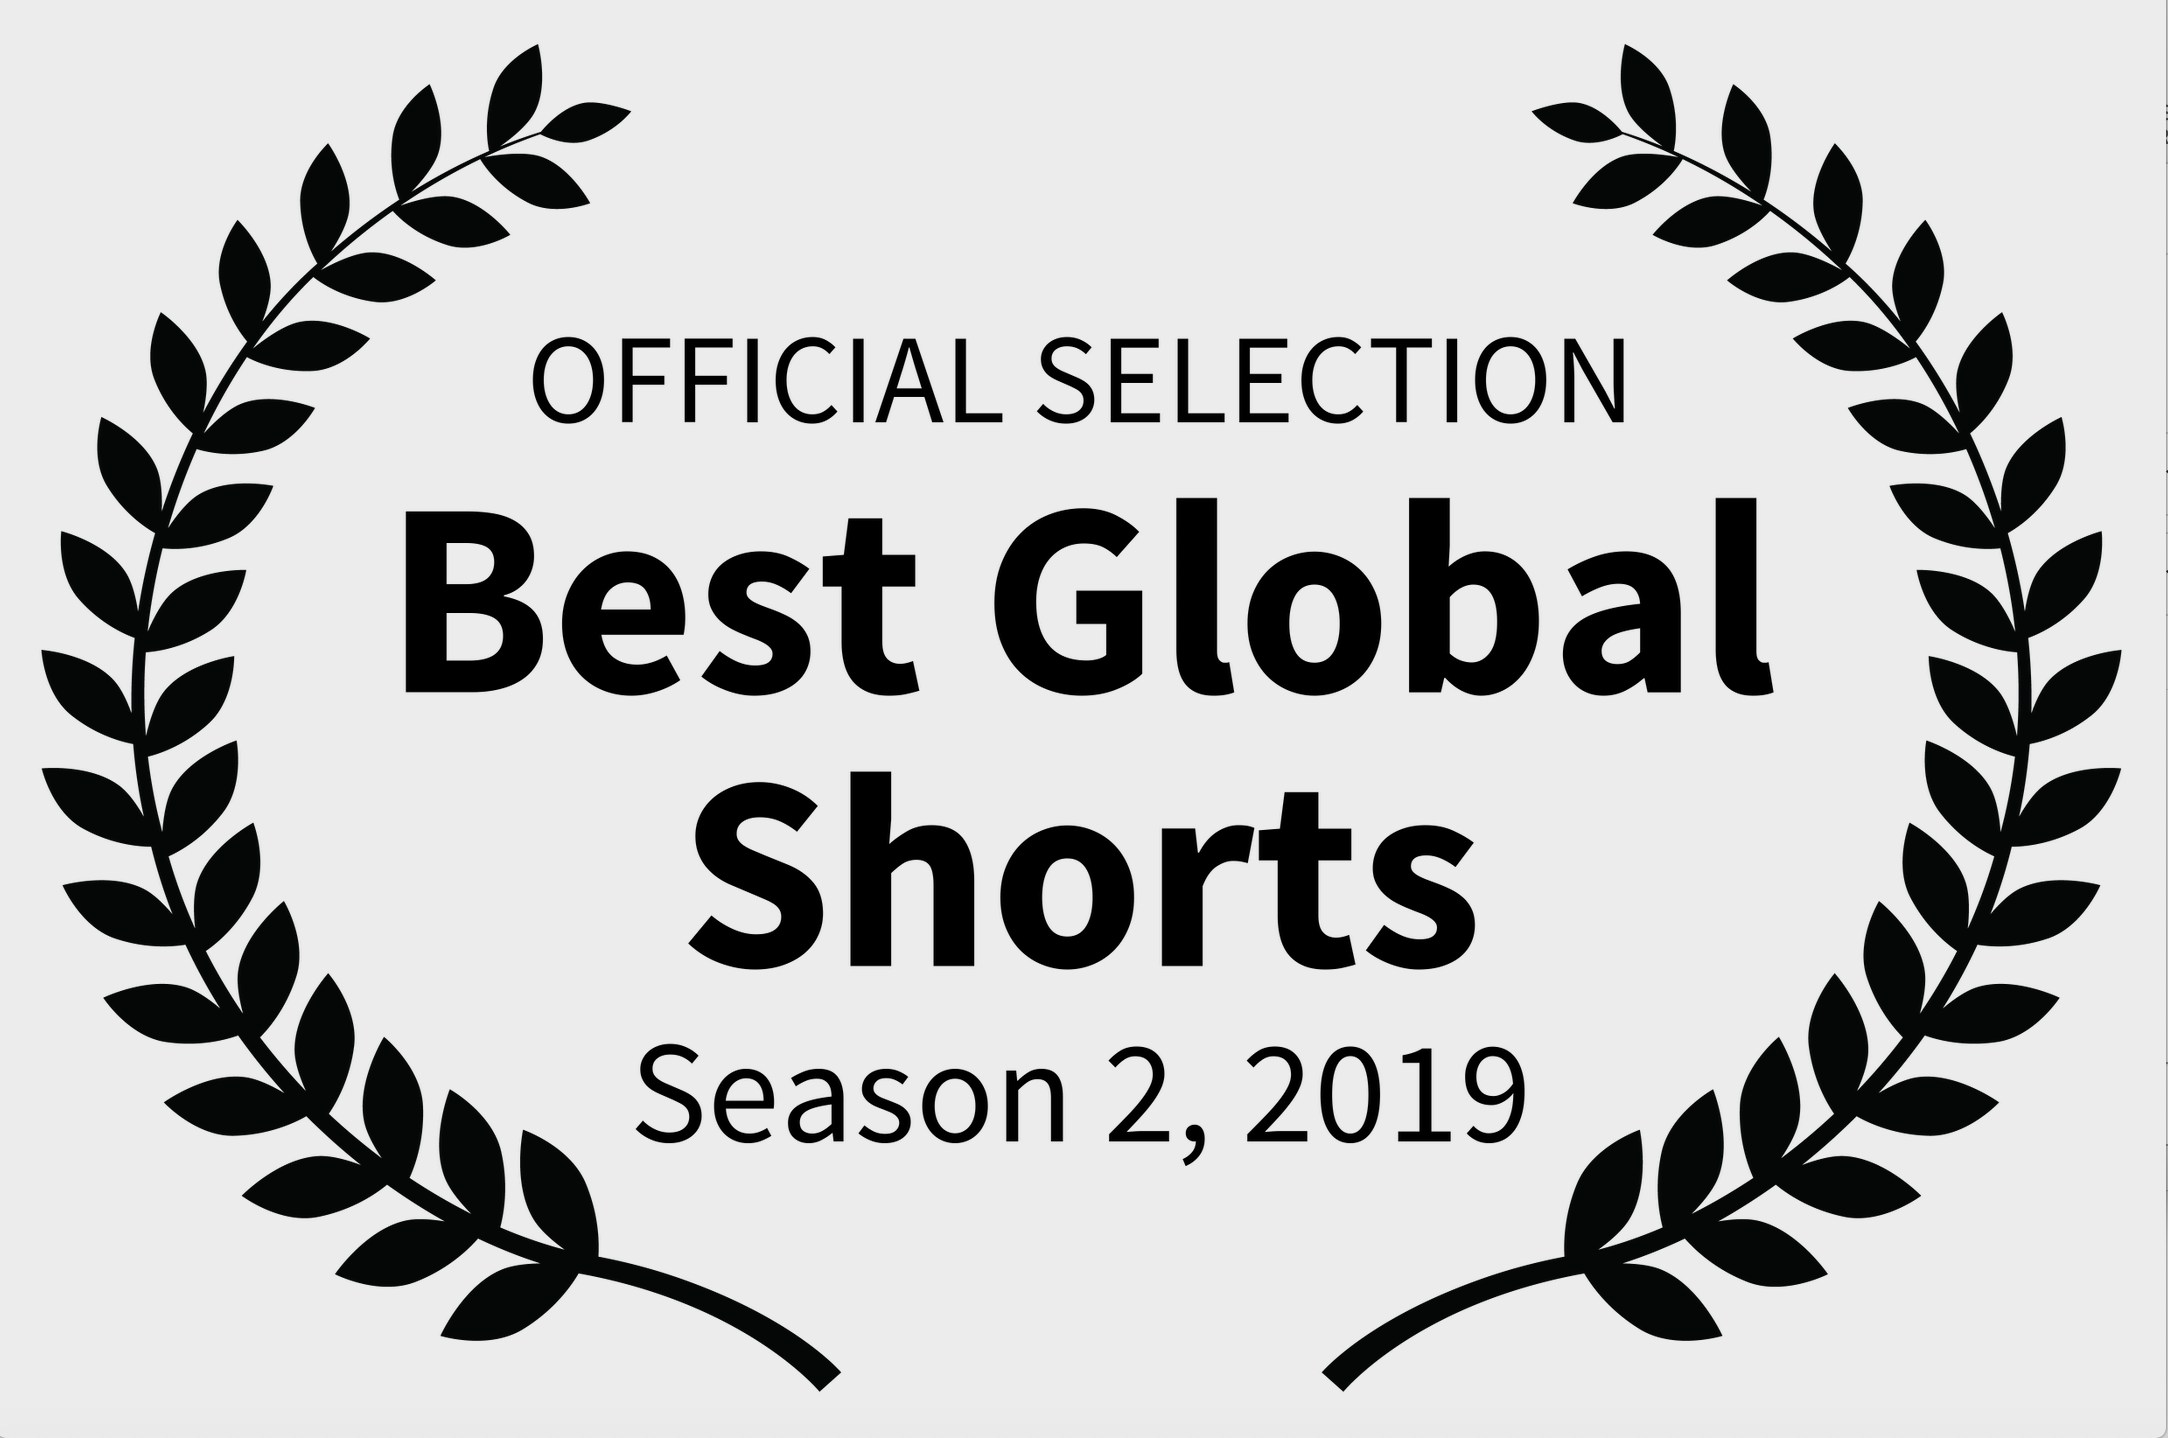 Official Selection Best Global Shorts Season 2, 2019 for